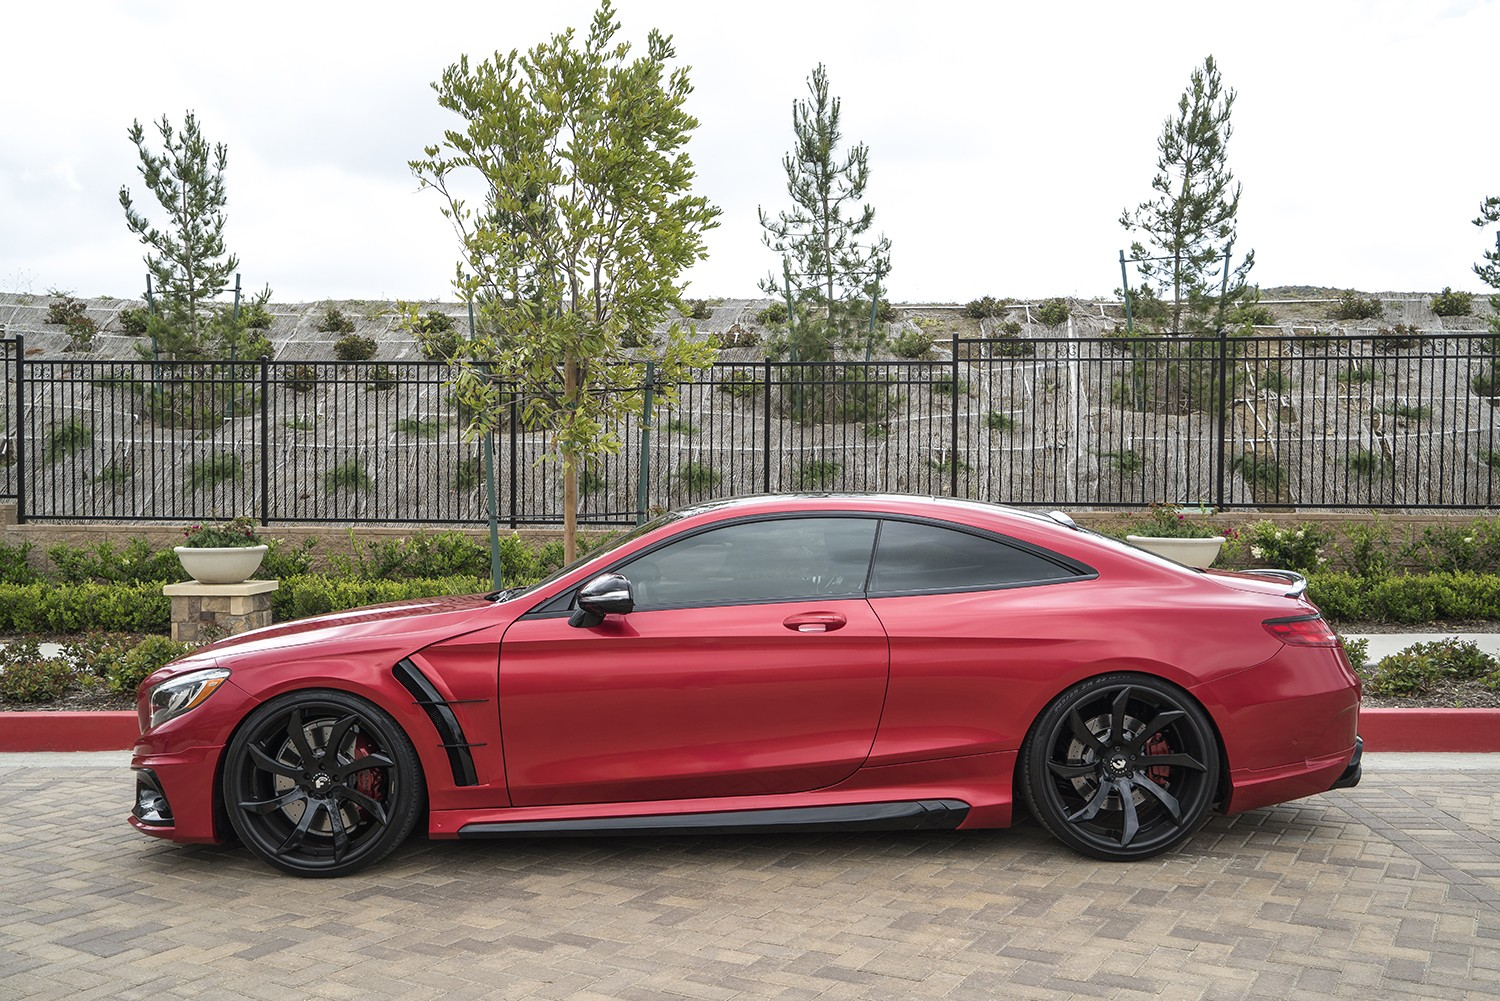 Mercedes Amg S63 Coupe Gets Wald Body Kit And Forgiato